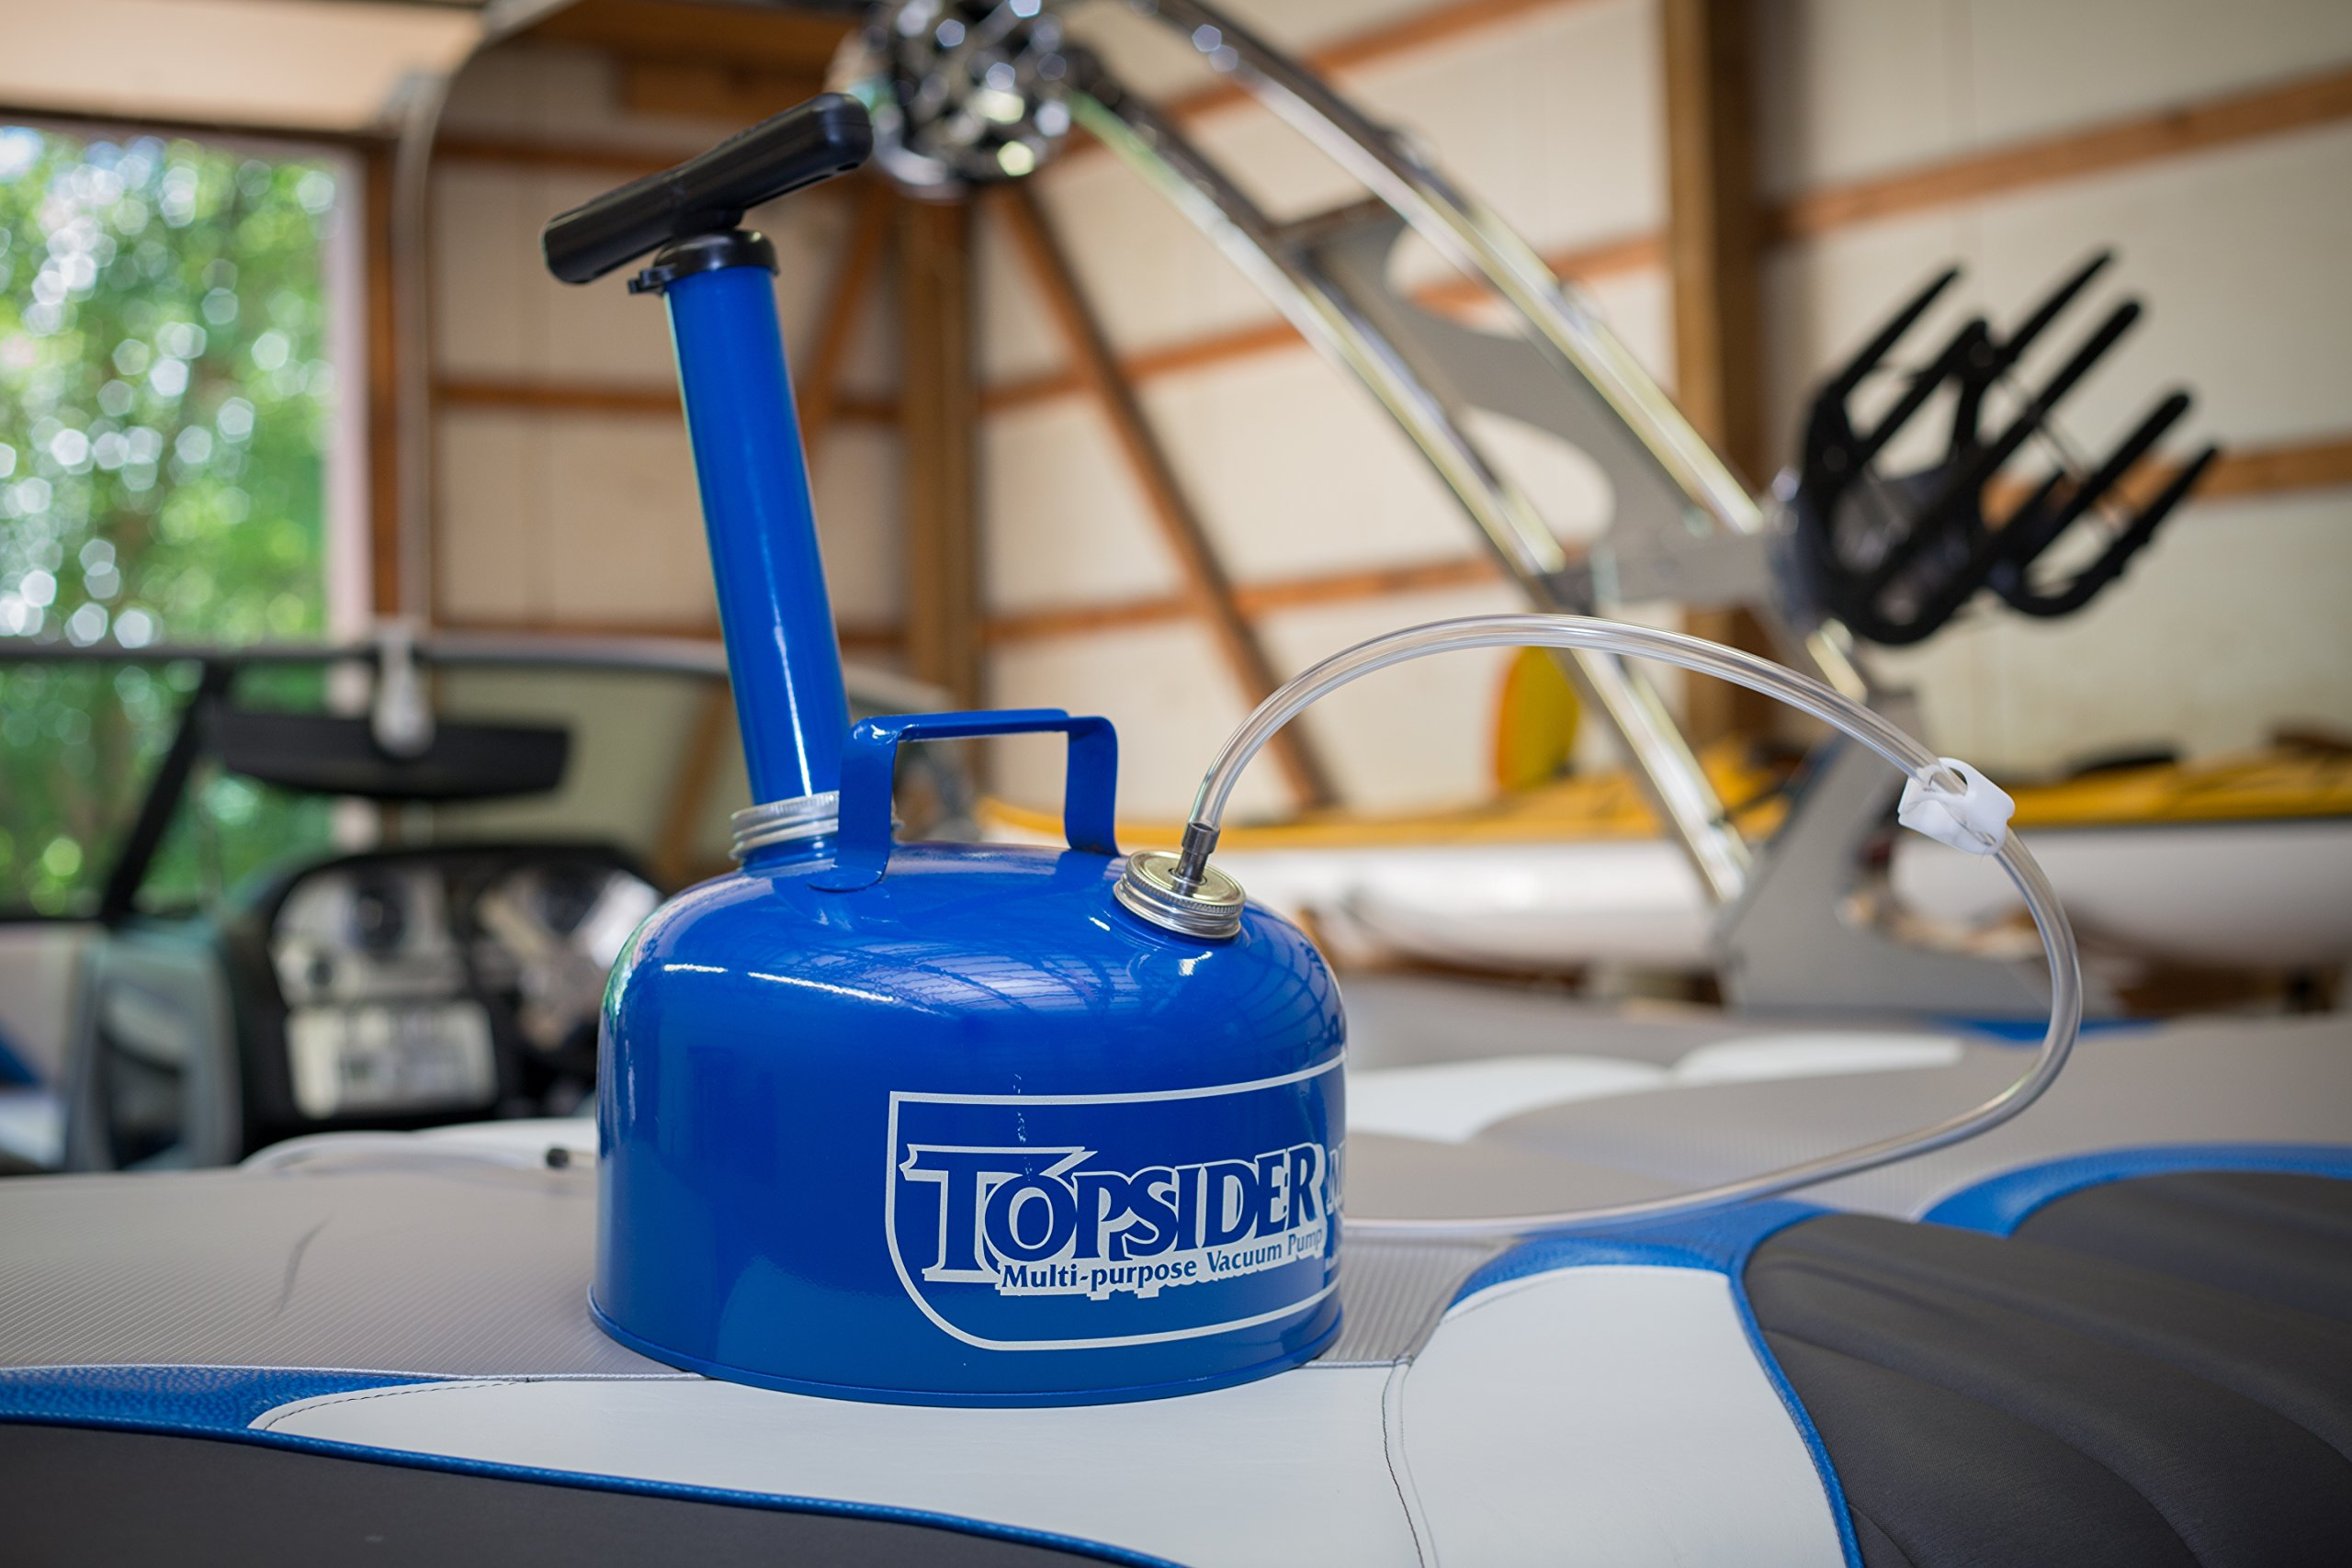 Air Power America 5060TS Topsider Multi-Purpose Fluid Removing System by Airpower America (Image #3)